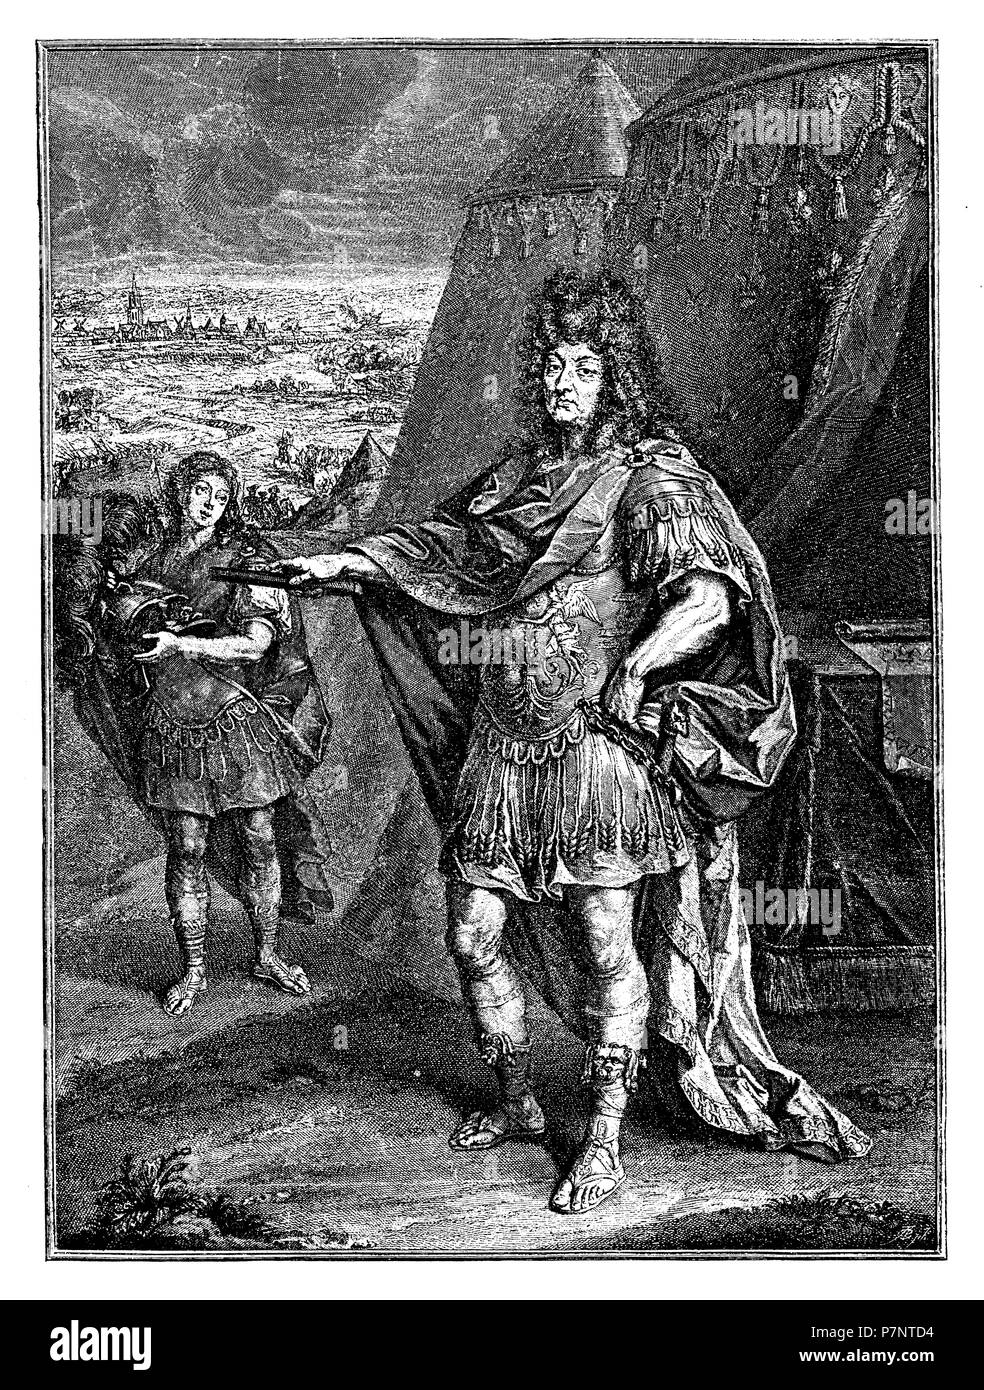 Louis XIV (Louis XIV), 1638-1715), French monarch of the Bourbon family. in  the 51st year of life. After the engraving by Peter Simon from the year  1694, ...